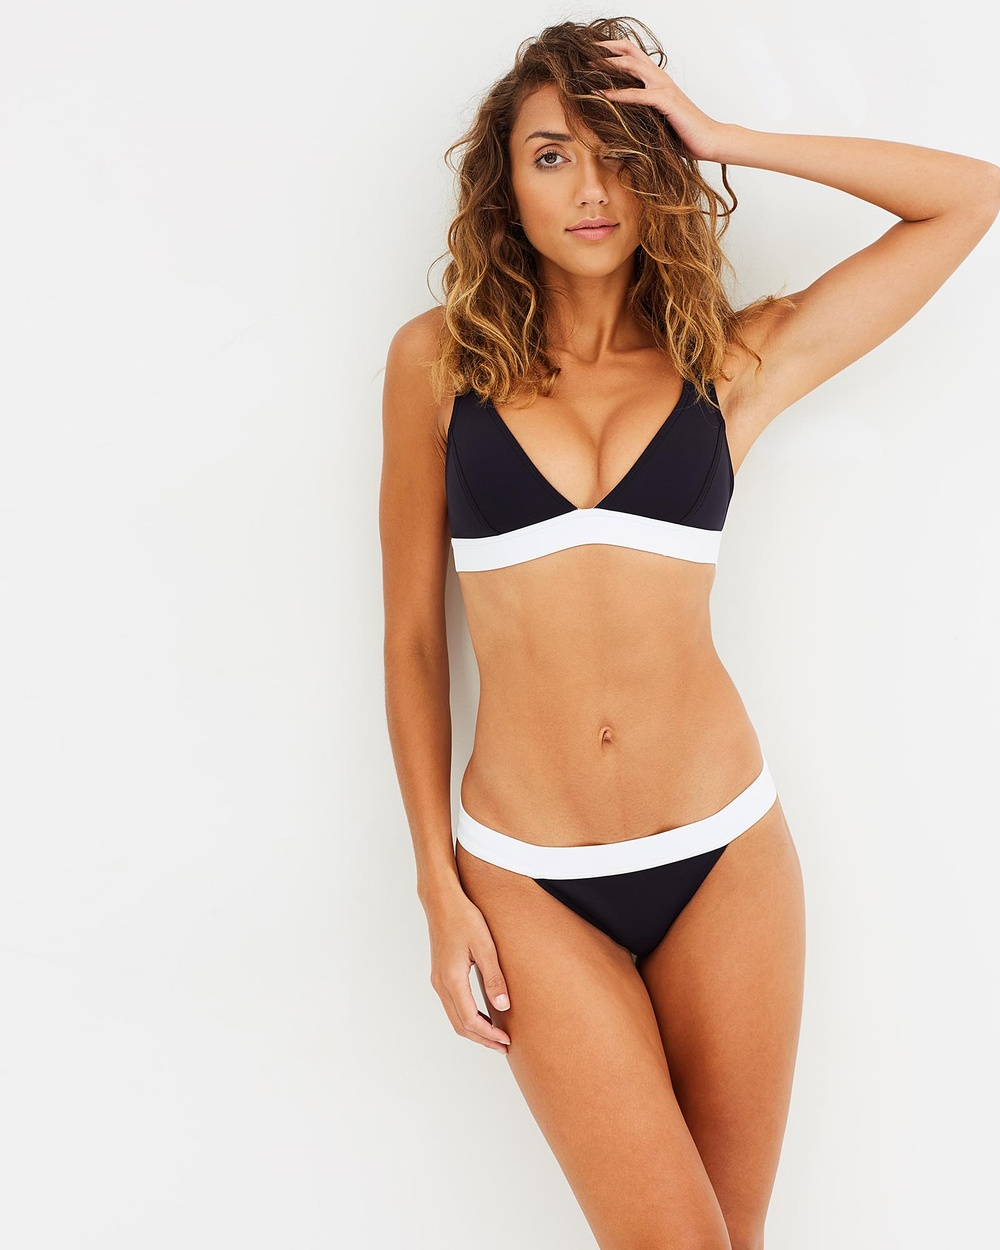 Bondi Born Moonbeam Coast Walk Bikini Bottoms Bikini Bottoms Black, White Moonbeam Coast Walk Bikini Bottoms